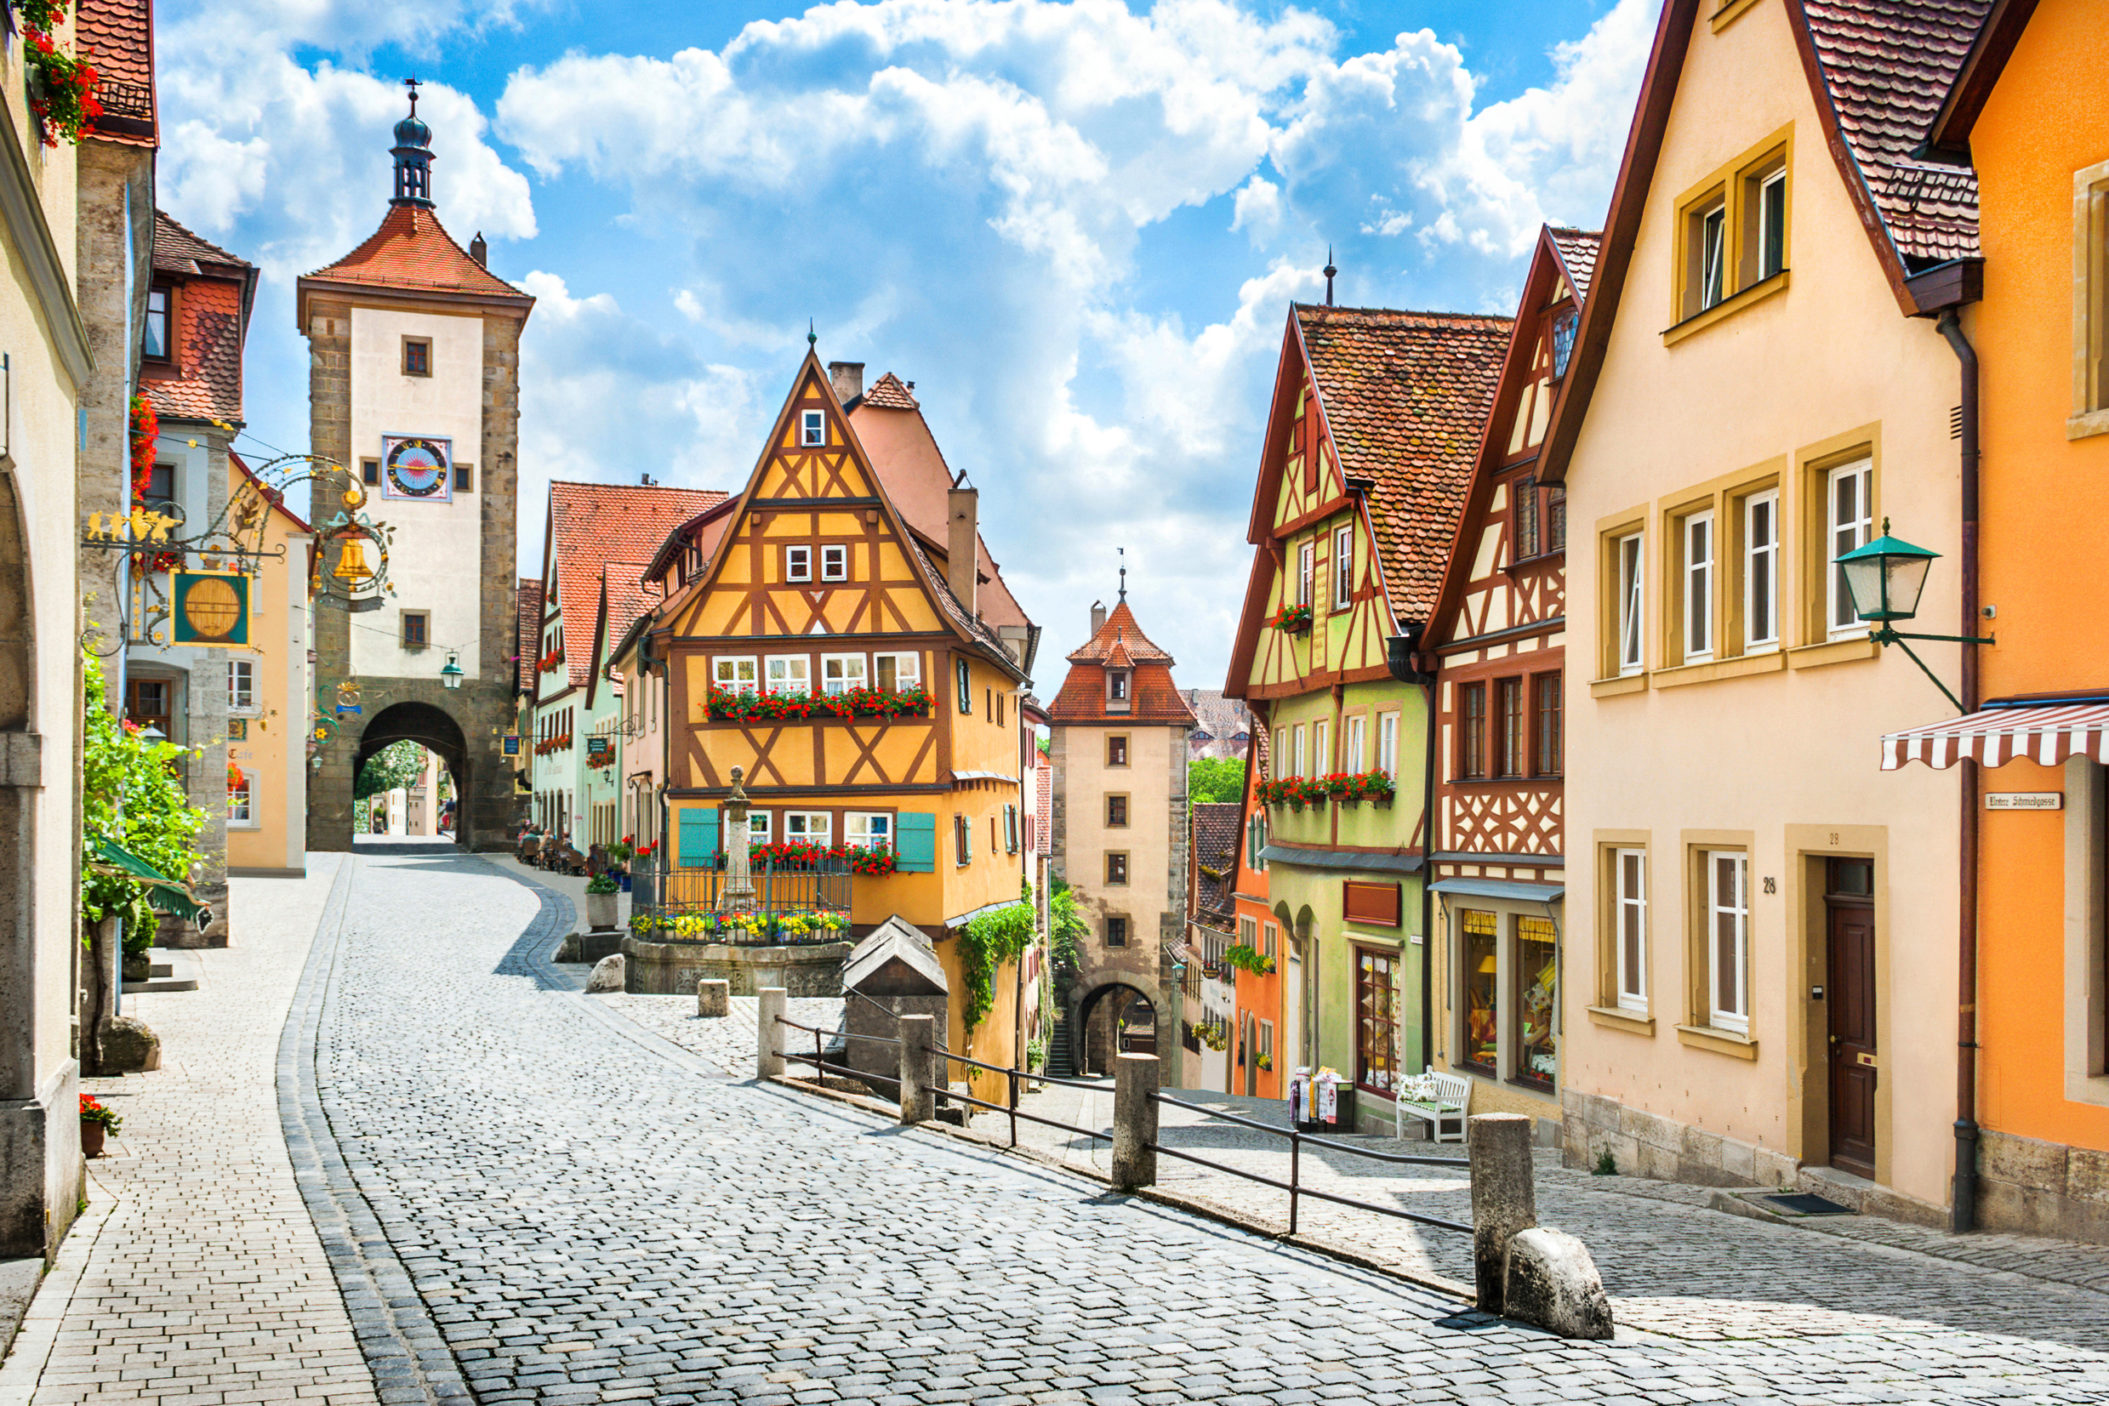 Germany [Shutterstock]